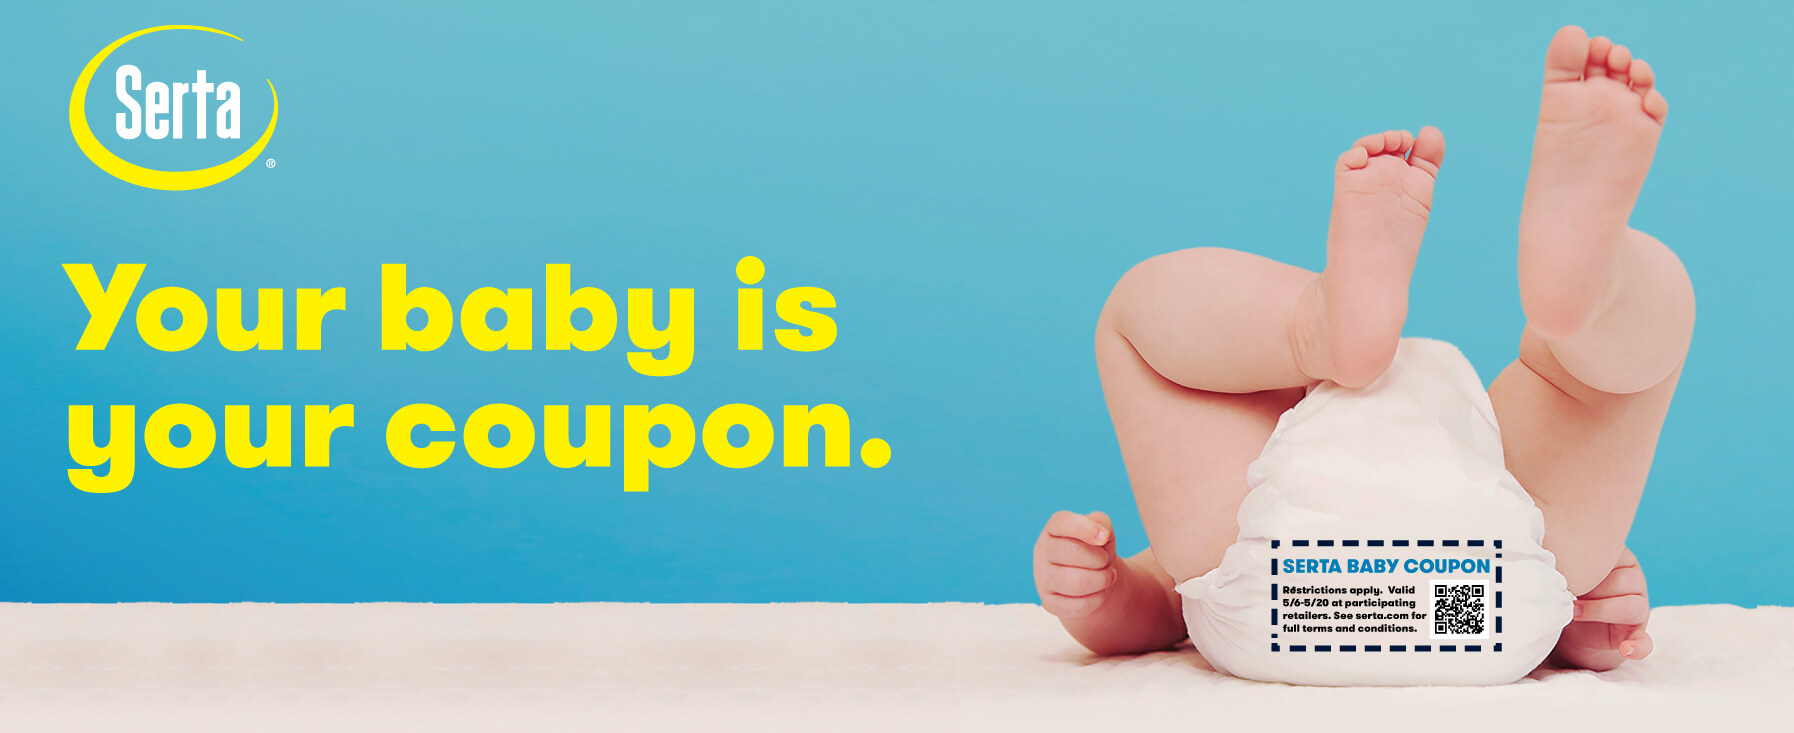 Your baby is your coupon.